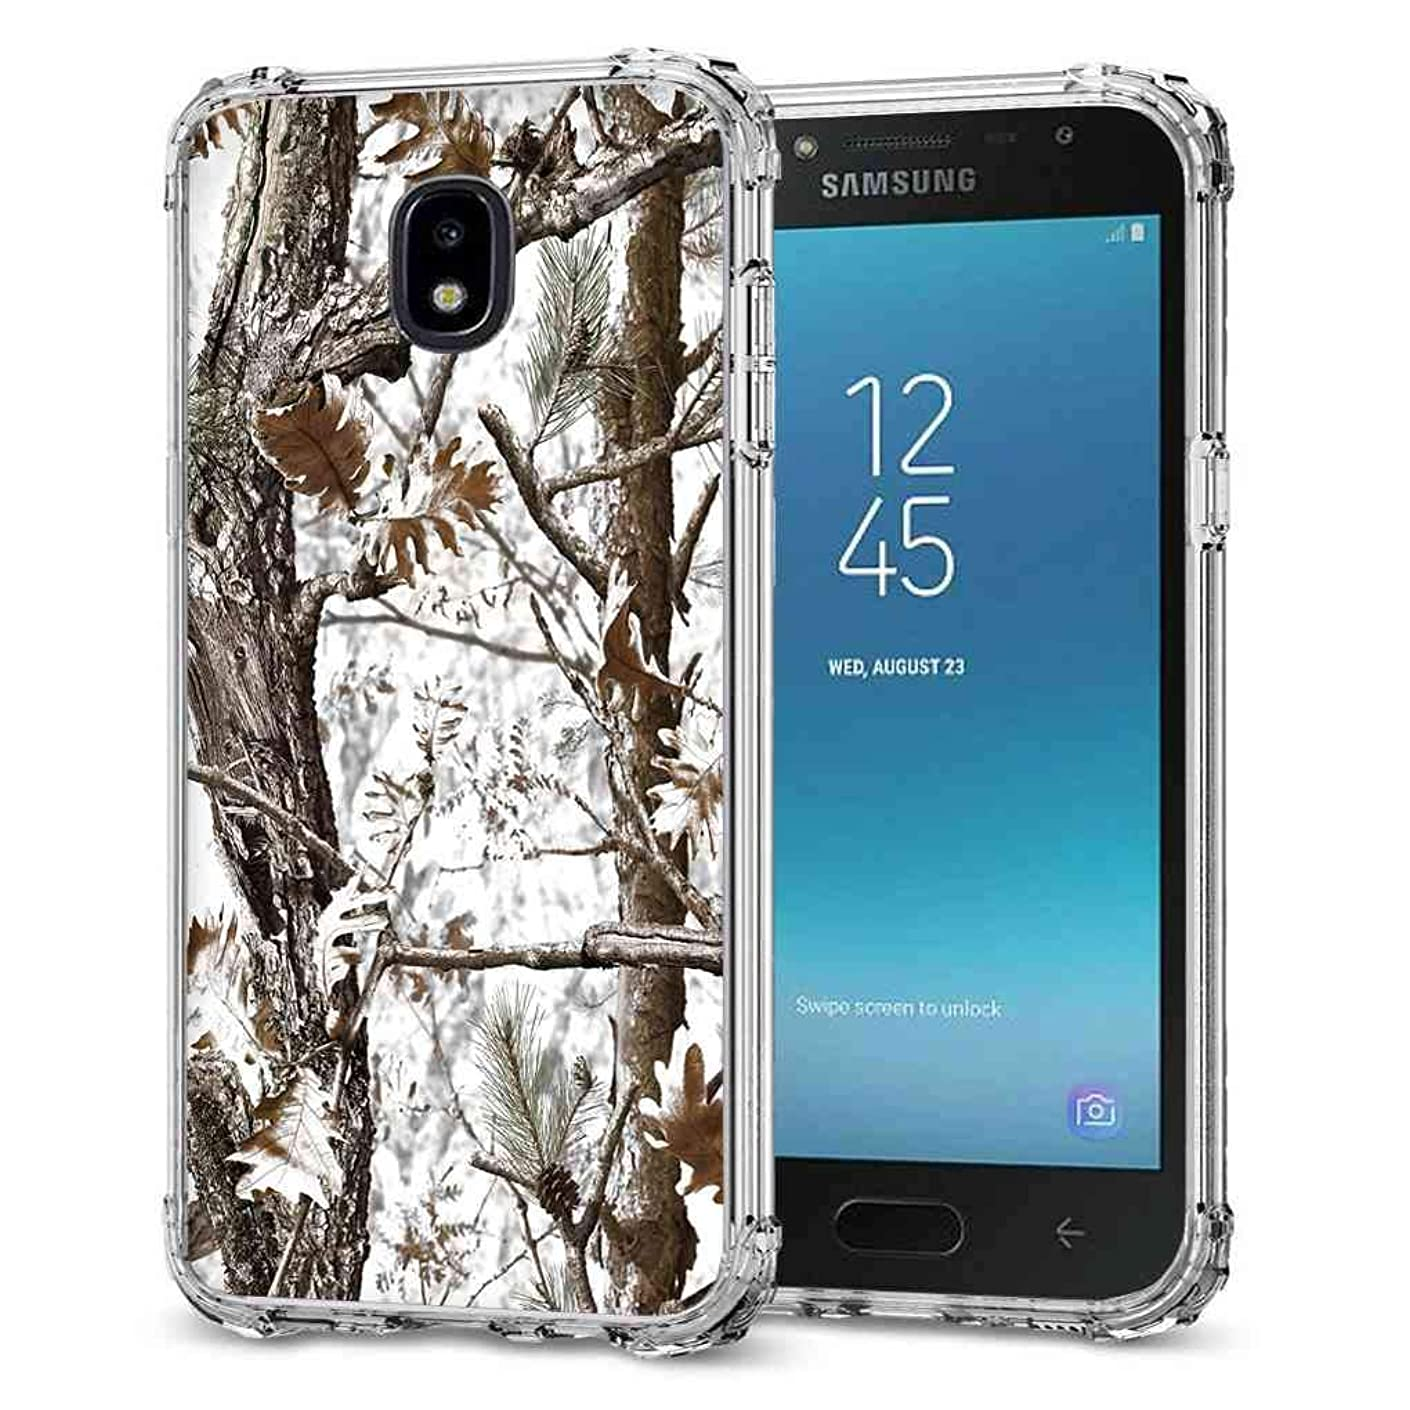 for Galaxy J7 2018 Camo Case, BAYKE Slim TPU Bumper Protective Cover with Reinforced Corners for Samsung Galaxy J7 2018/Galaxy J7 Refine/Galaxy J7 V 2nd Gen/Galaxy J7 Top/J7 Star/J7 Aero/J7 Crown